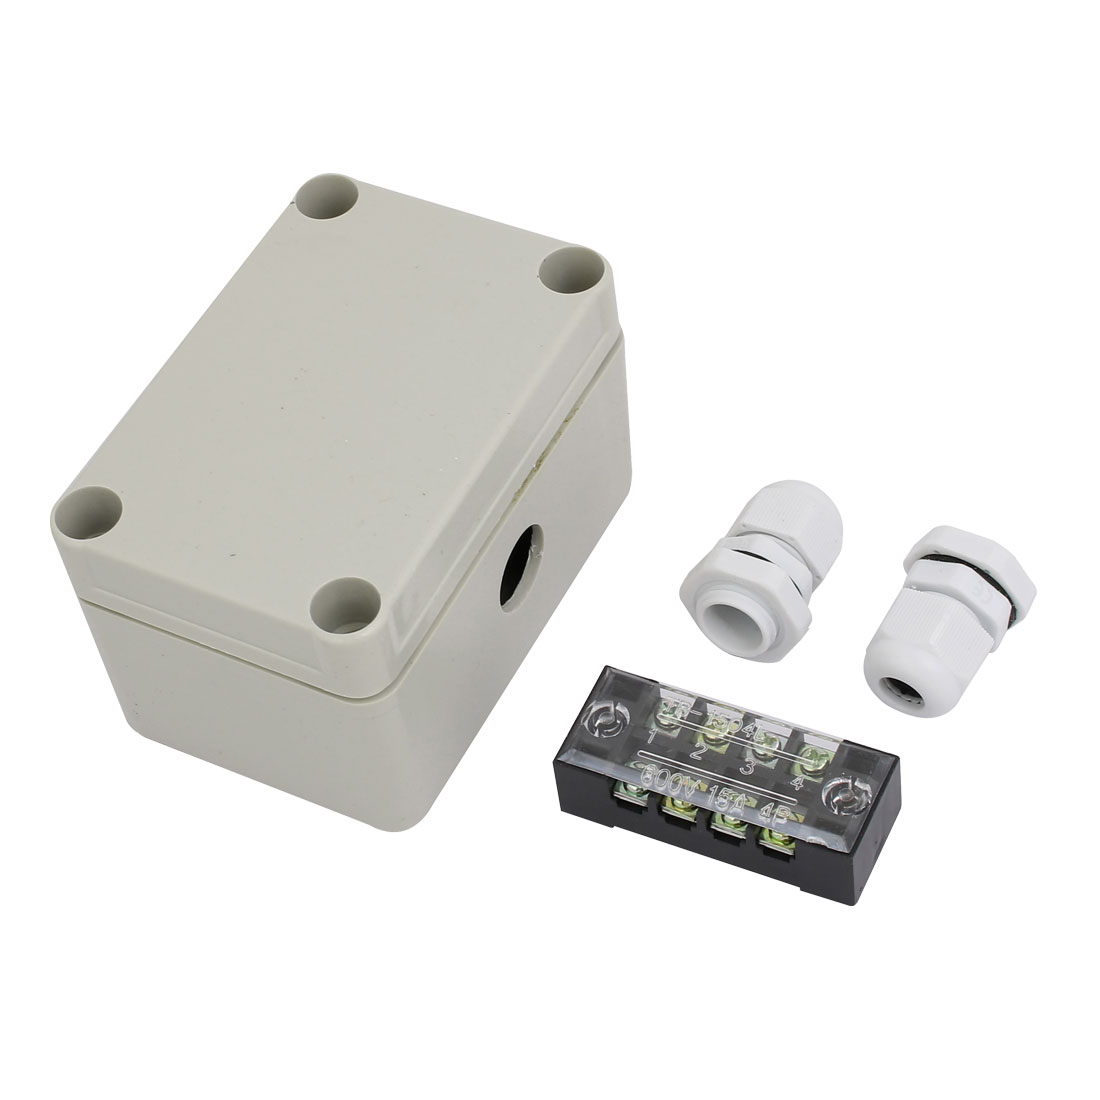 Cable Gland Barrier Terminal Block Electrical Junction Box Set 4 in 1